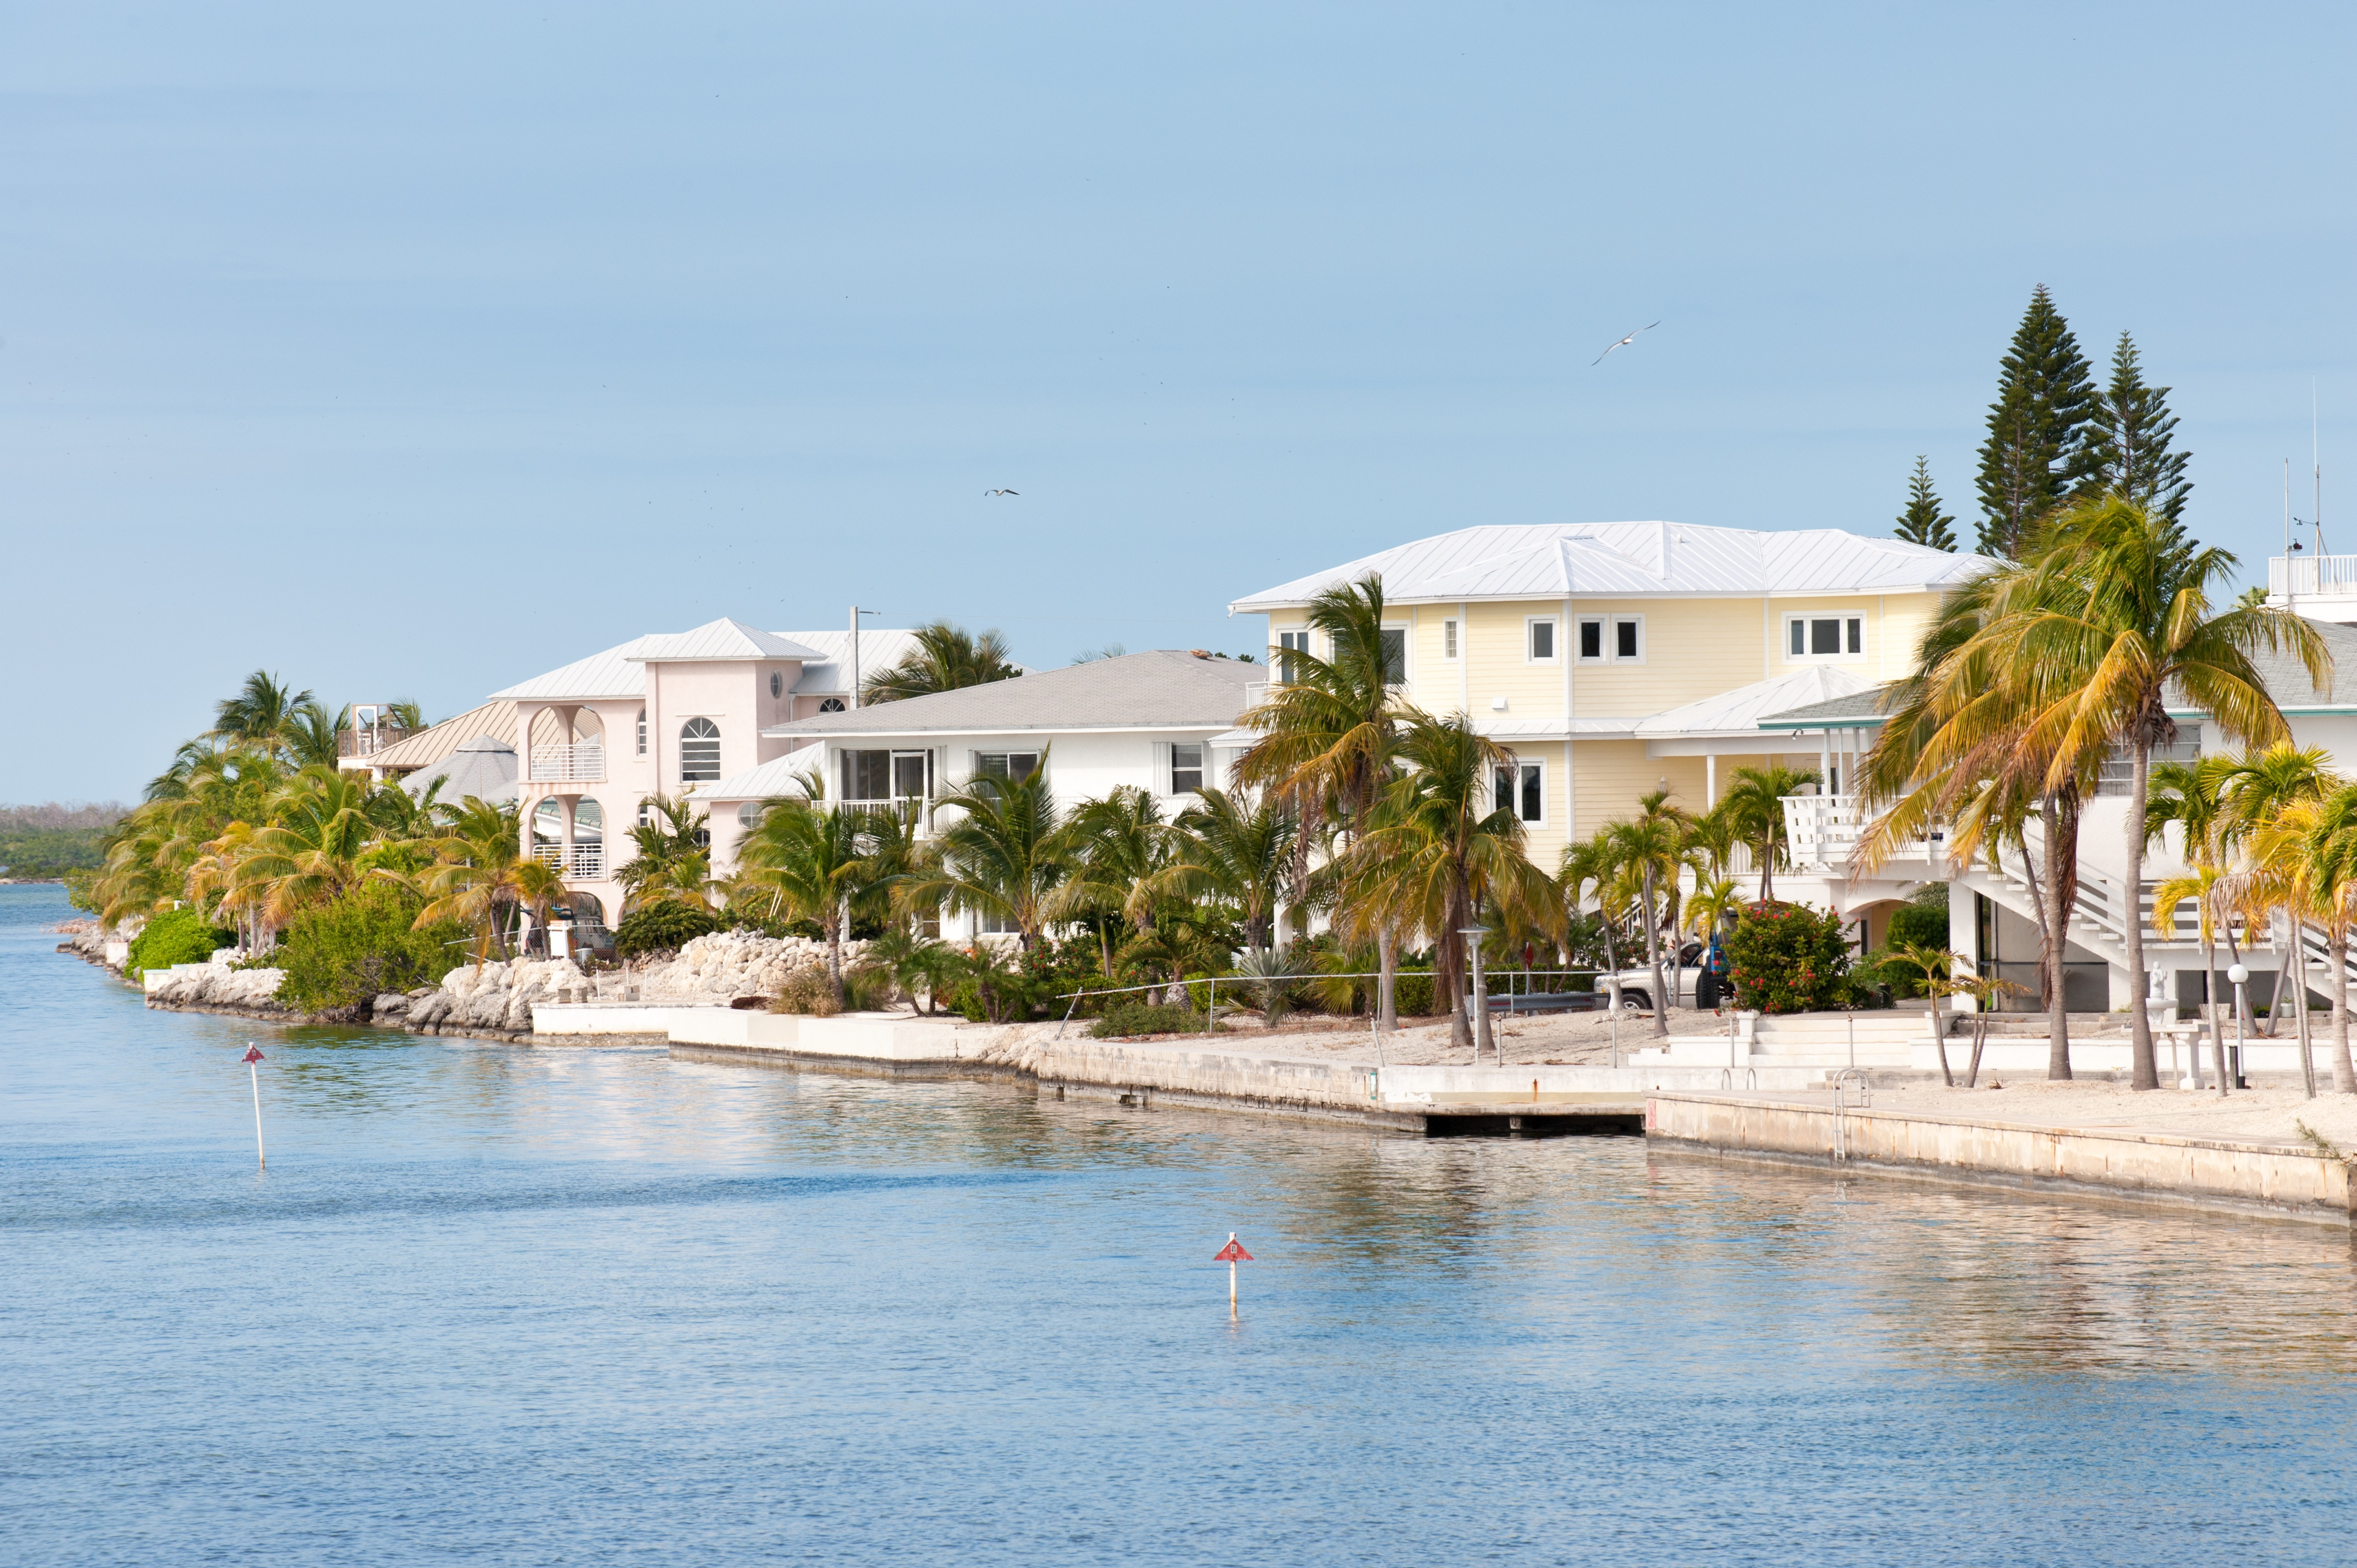 The Advantages of Purchasing an Investment Property in Florida